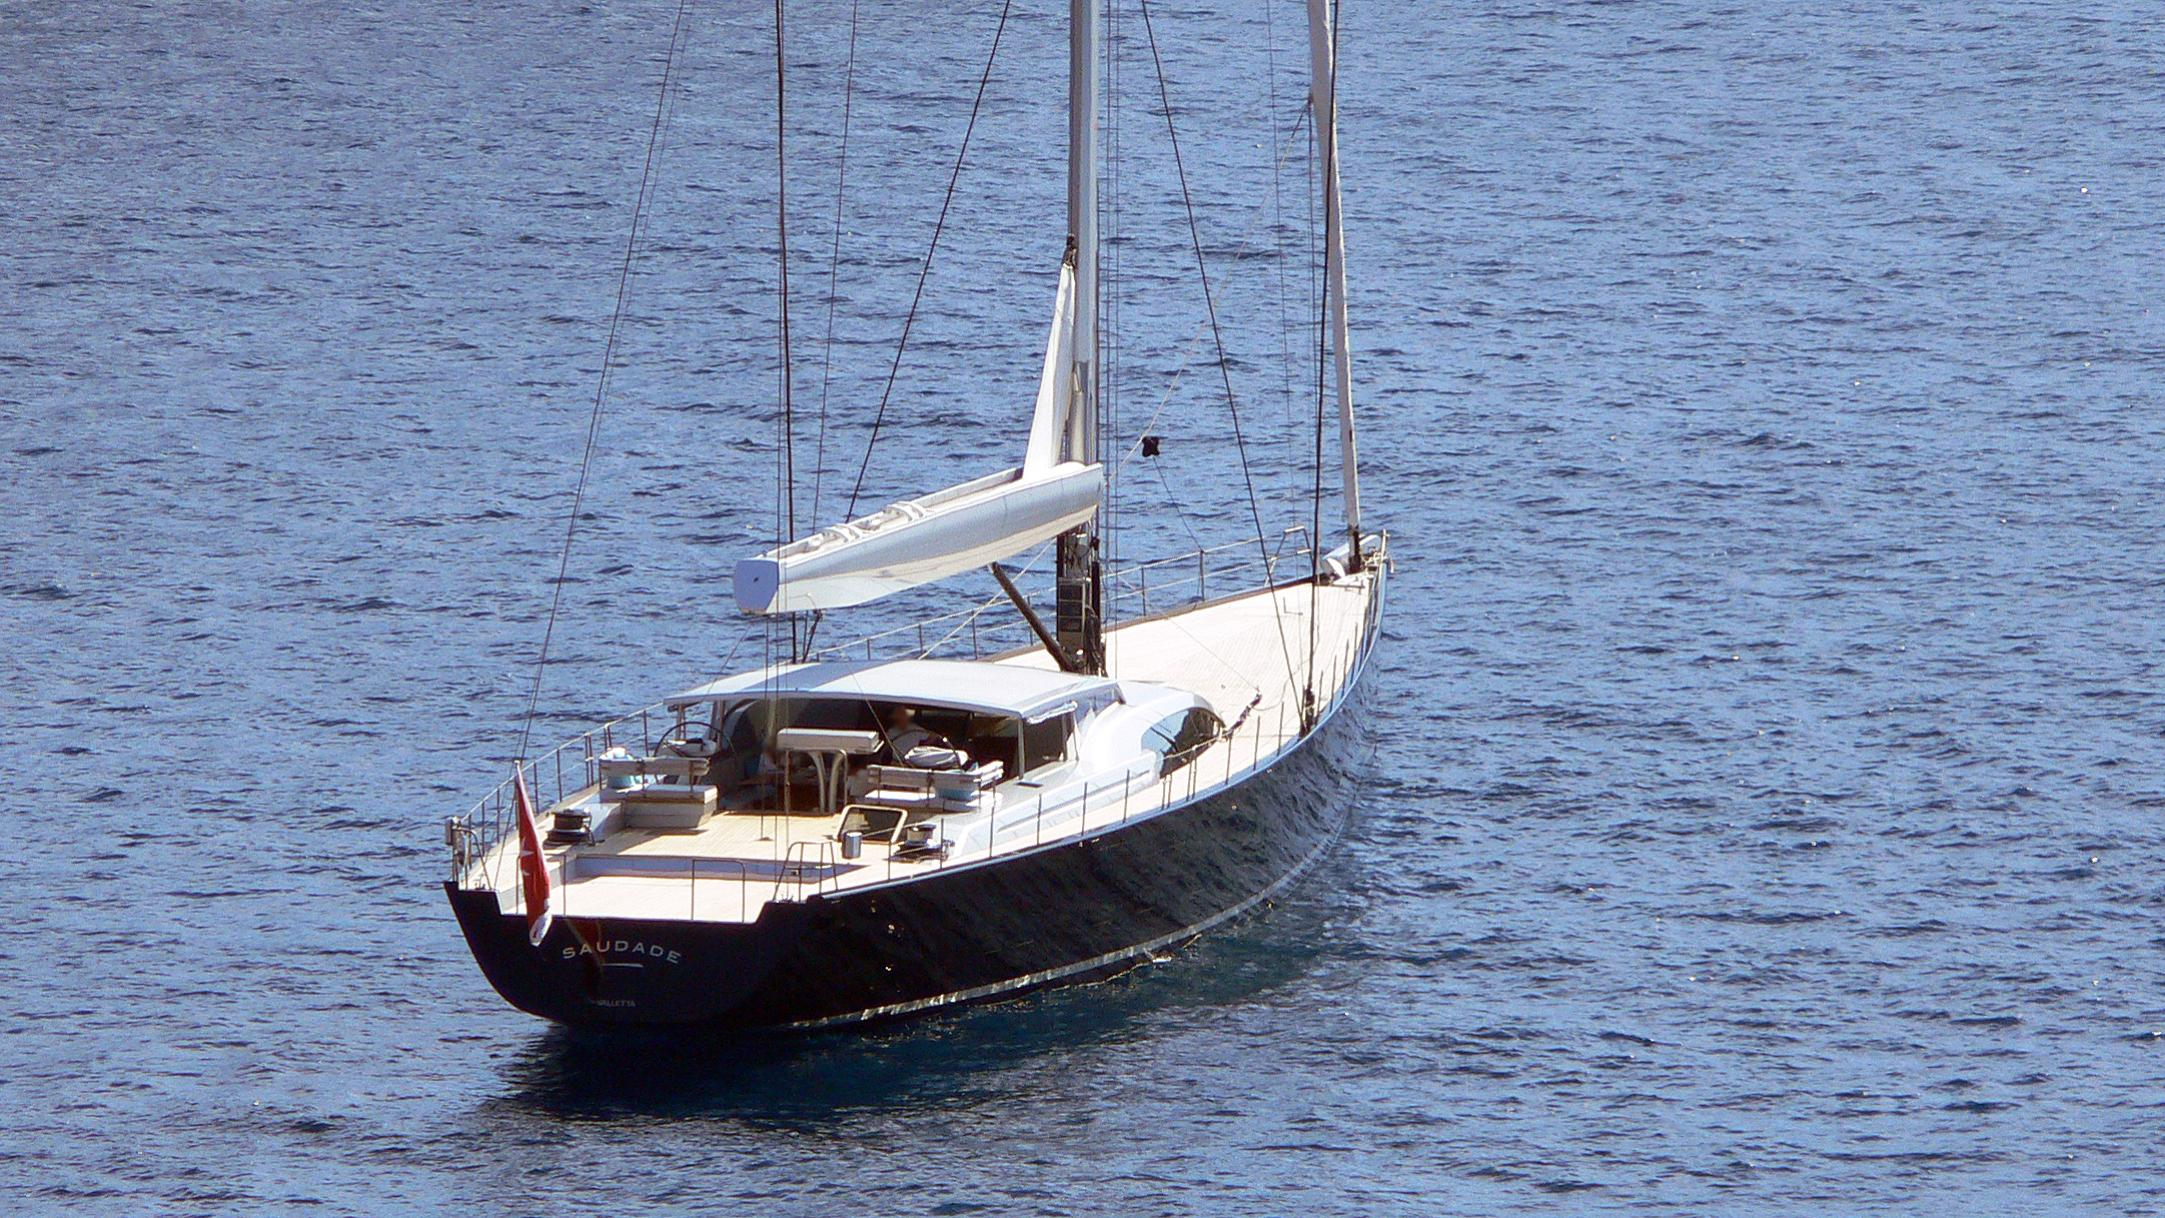 saudade-sailing-yacht-wally-2008-45m-moored-stern